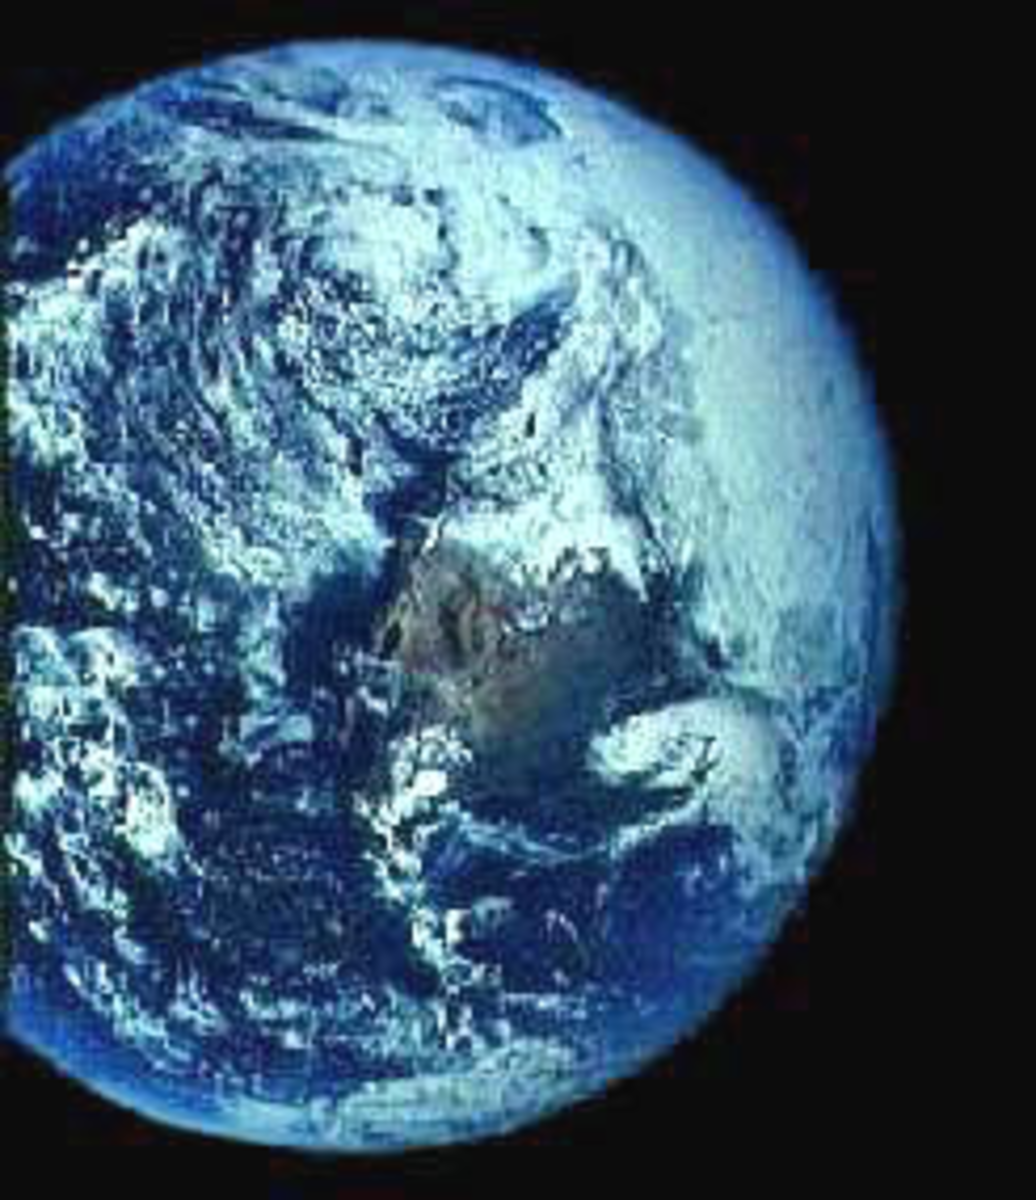 NASA photo showing Hollow Earth opening